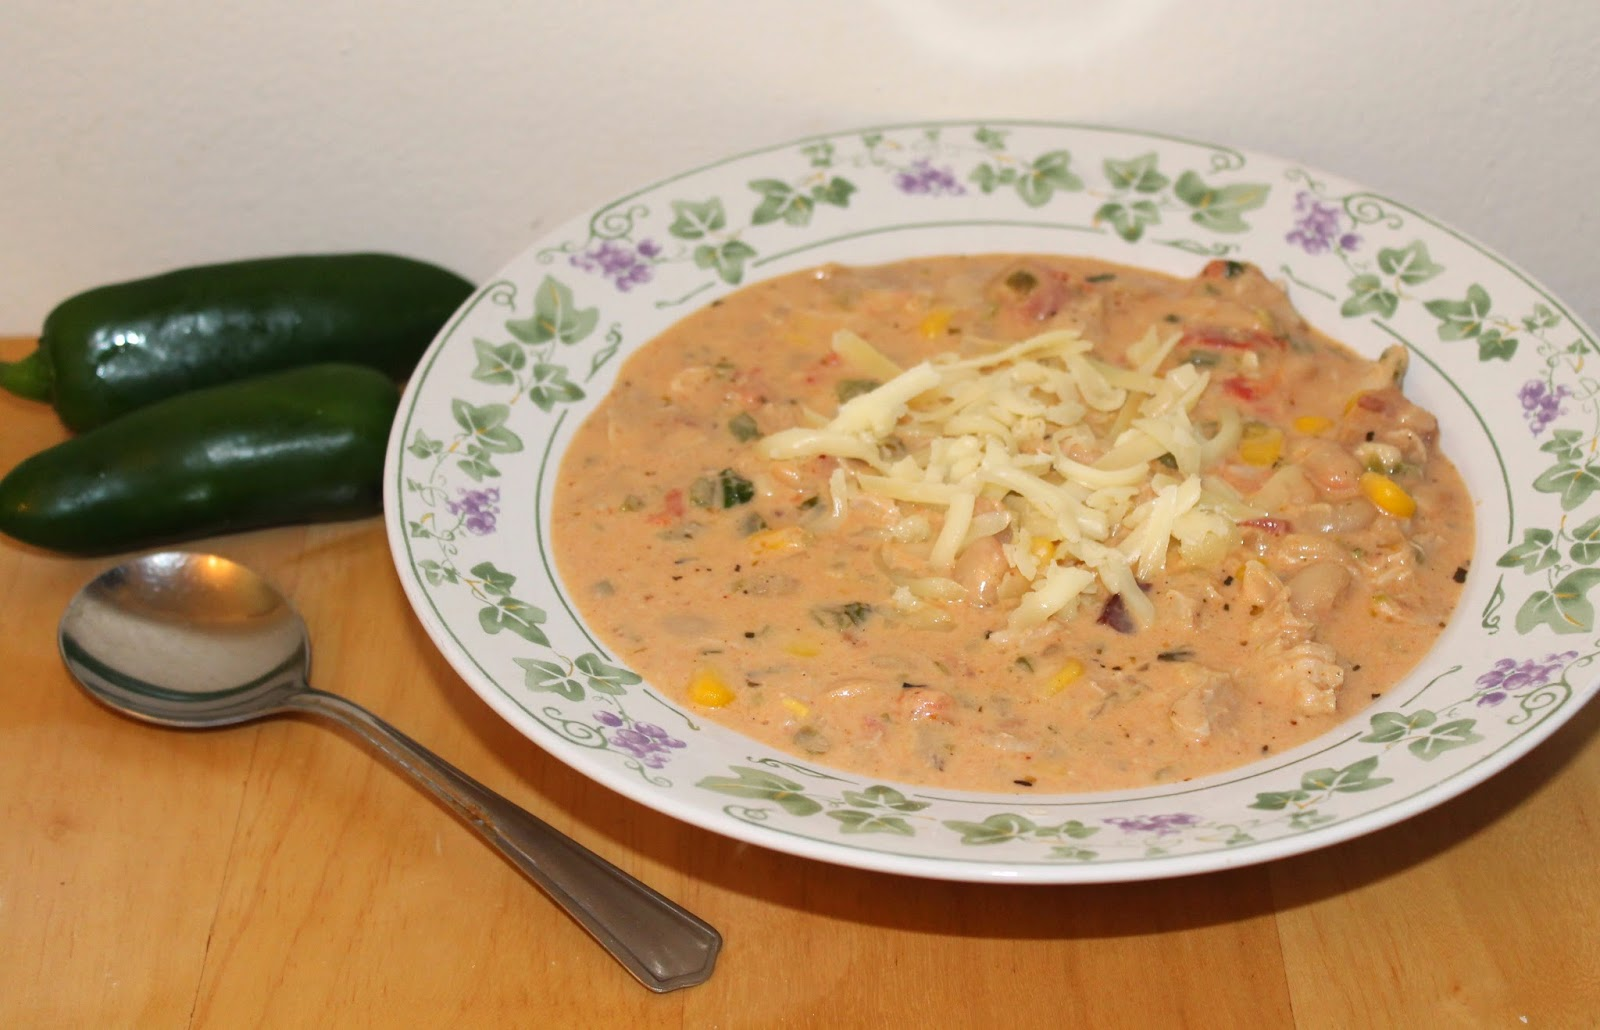 Savory Moments: Jalapeno popper chicken chili